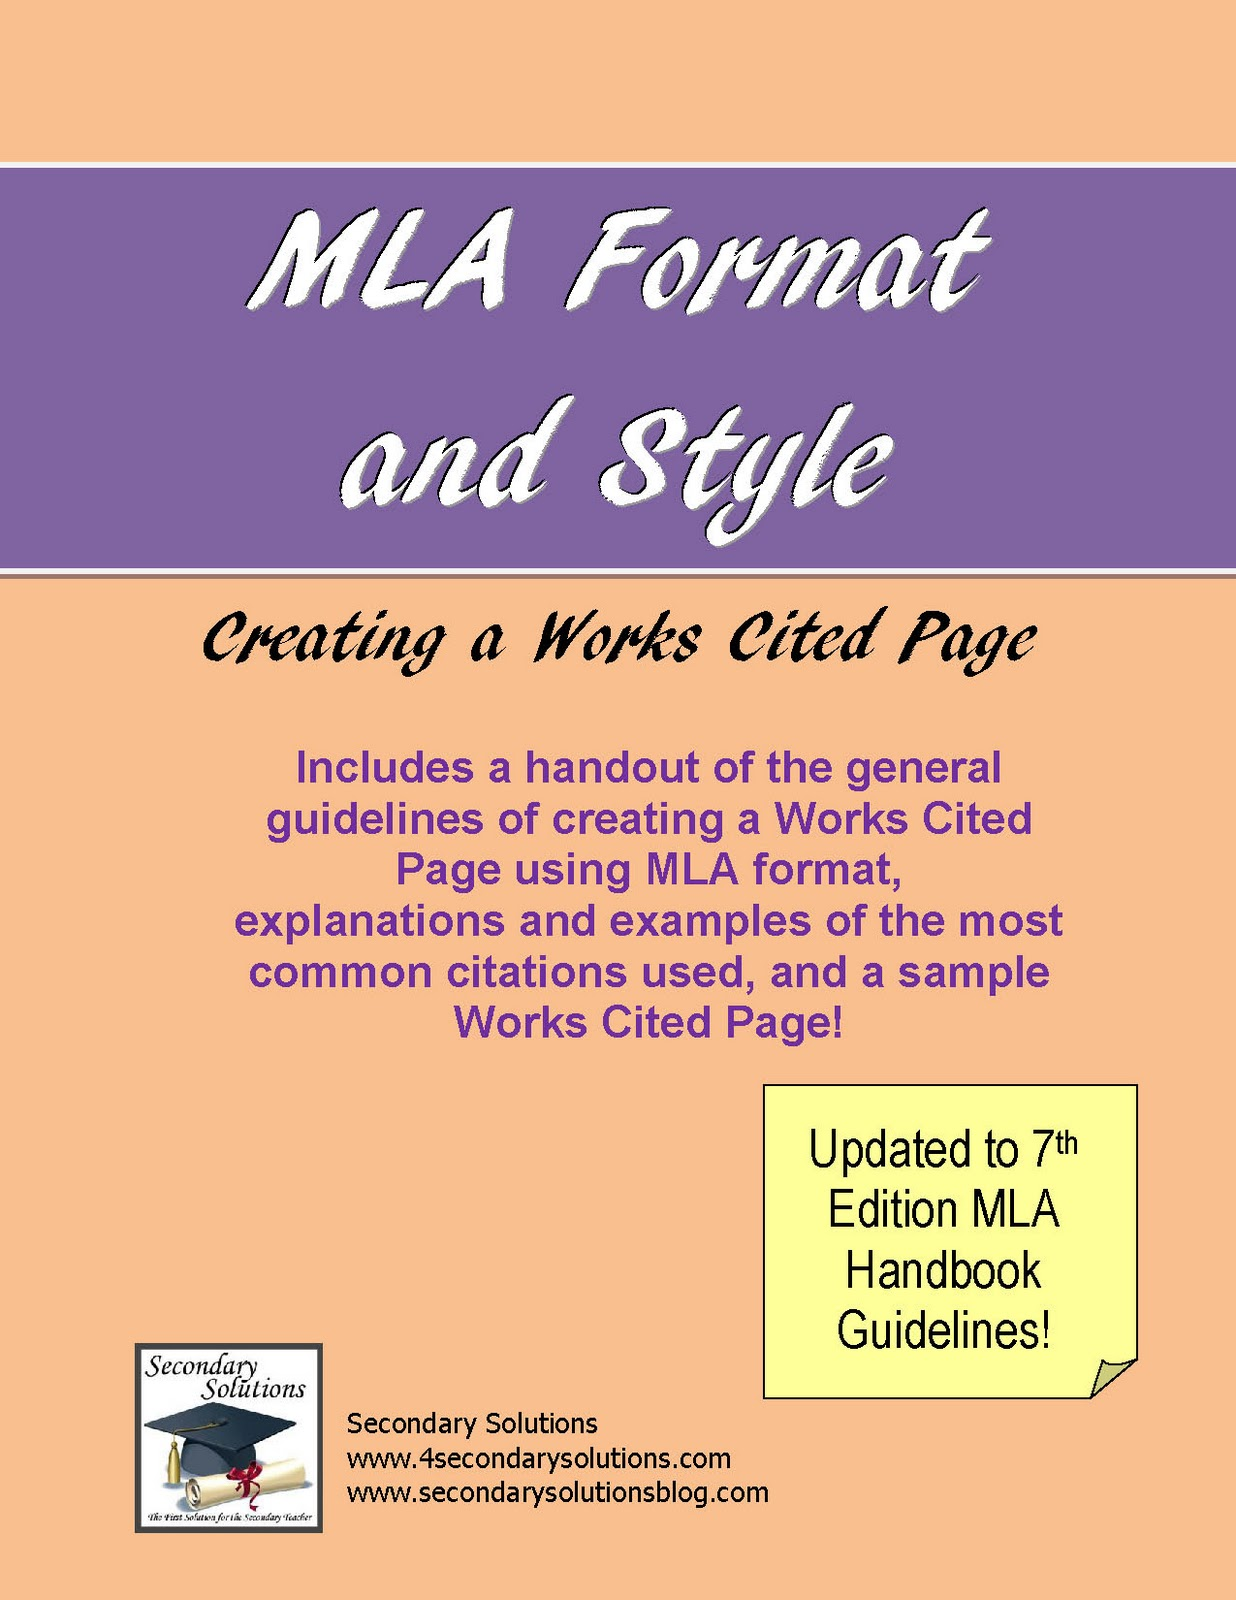 mla format internet citations Mla format writing and citation guide in mla format cite the info required for the citation source depends on the format of the source (print, the internet.